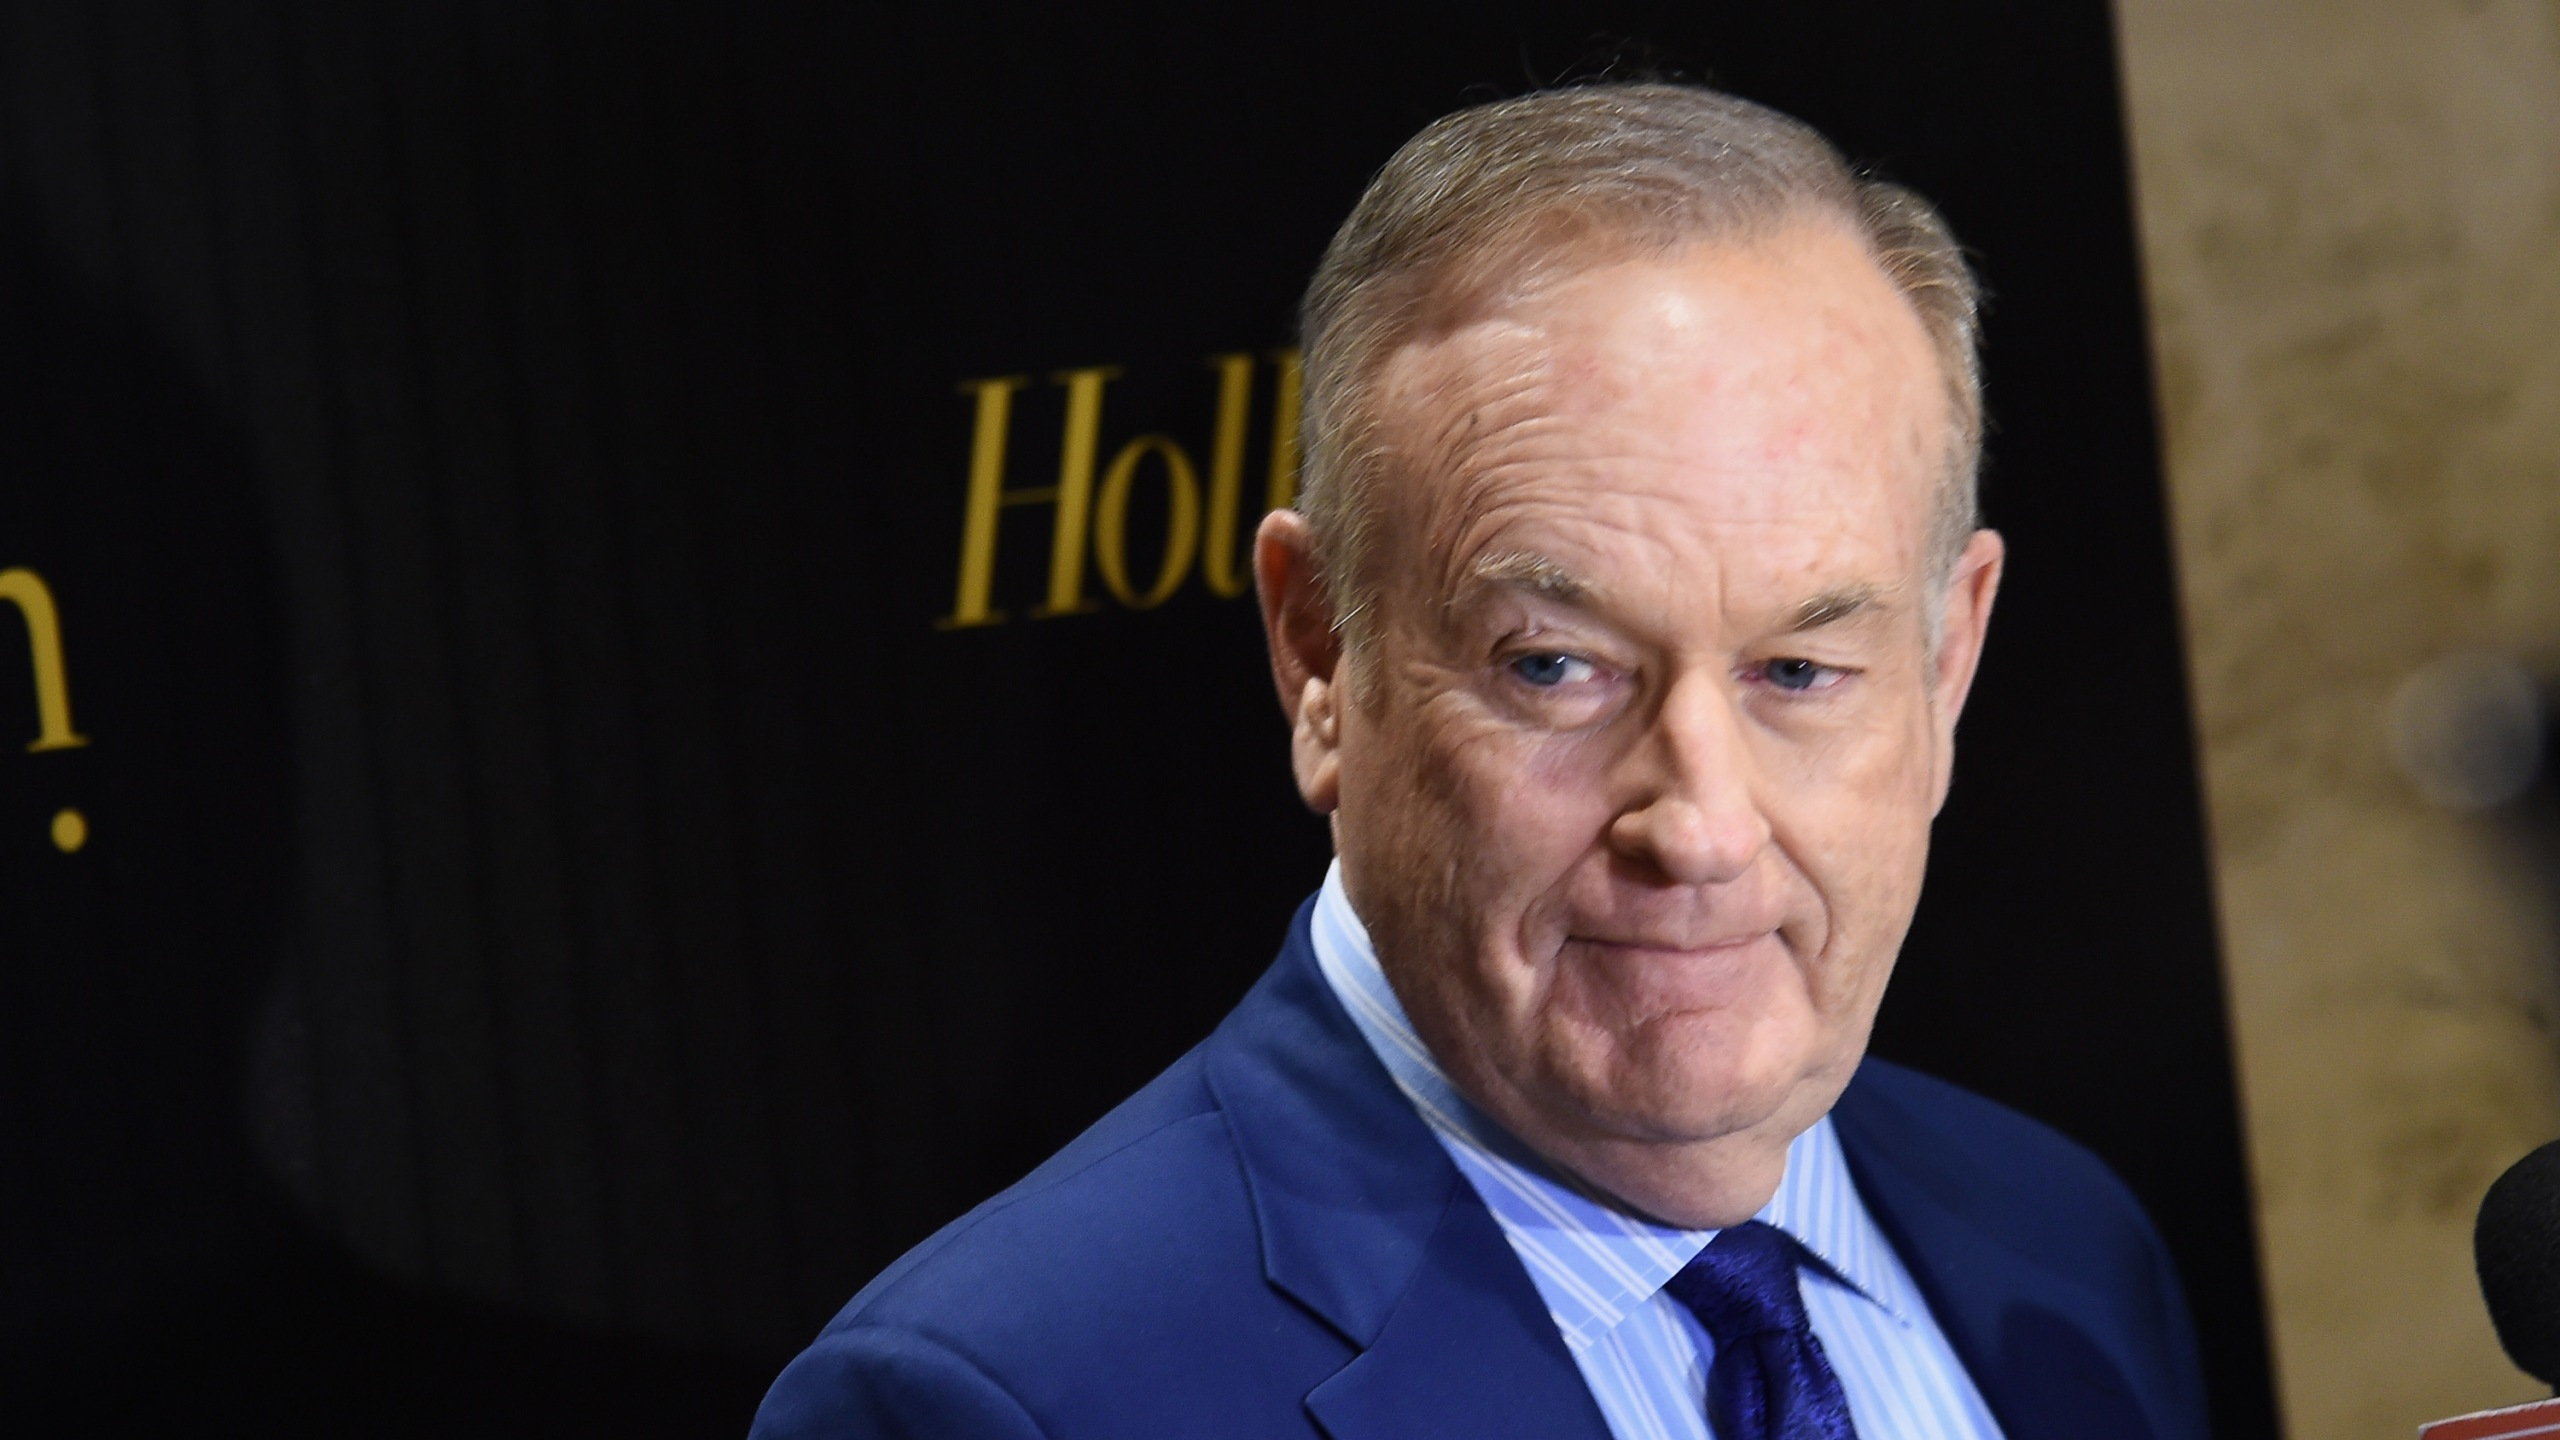 Television host Bill O'Reilly attends the Hollywood Reporter's 2016 35 Most Powerful People in Media at Four Seasons Restaurant on April 6, 2016, in New York City. (Credit: Ilya S. Savenok/Getty Images)